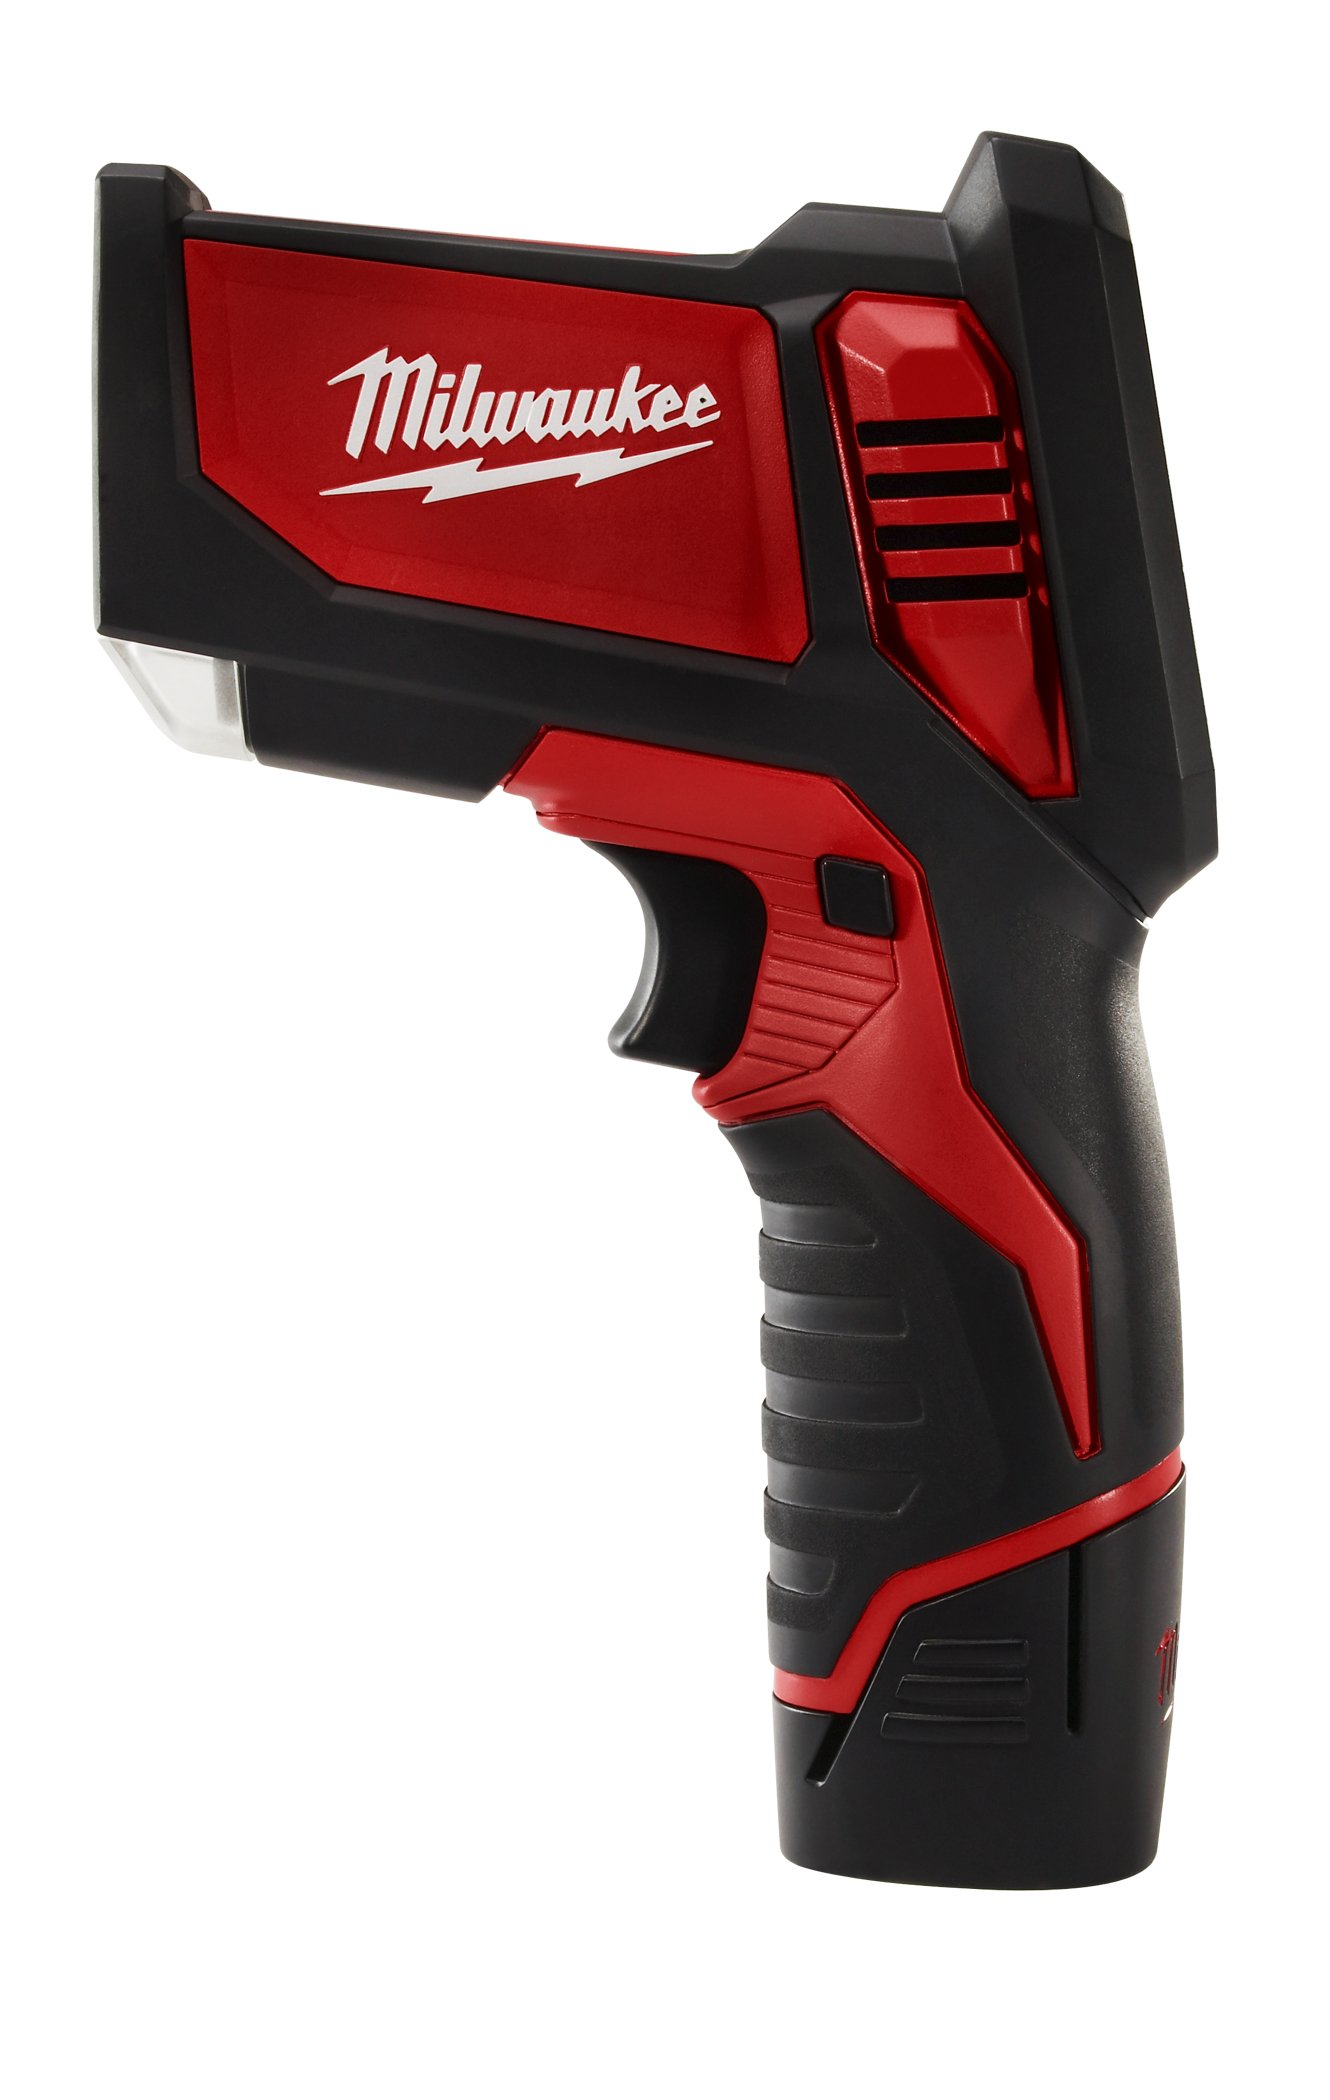 Milwaukee 2276-21 M12 Laser Temp Gun Kit